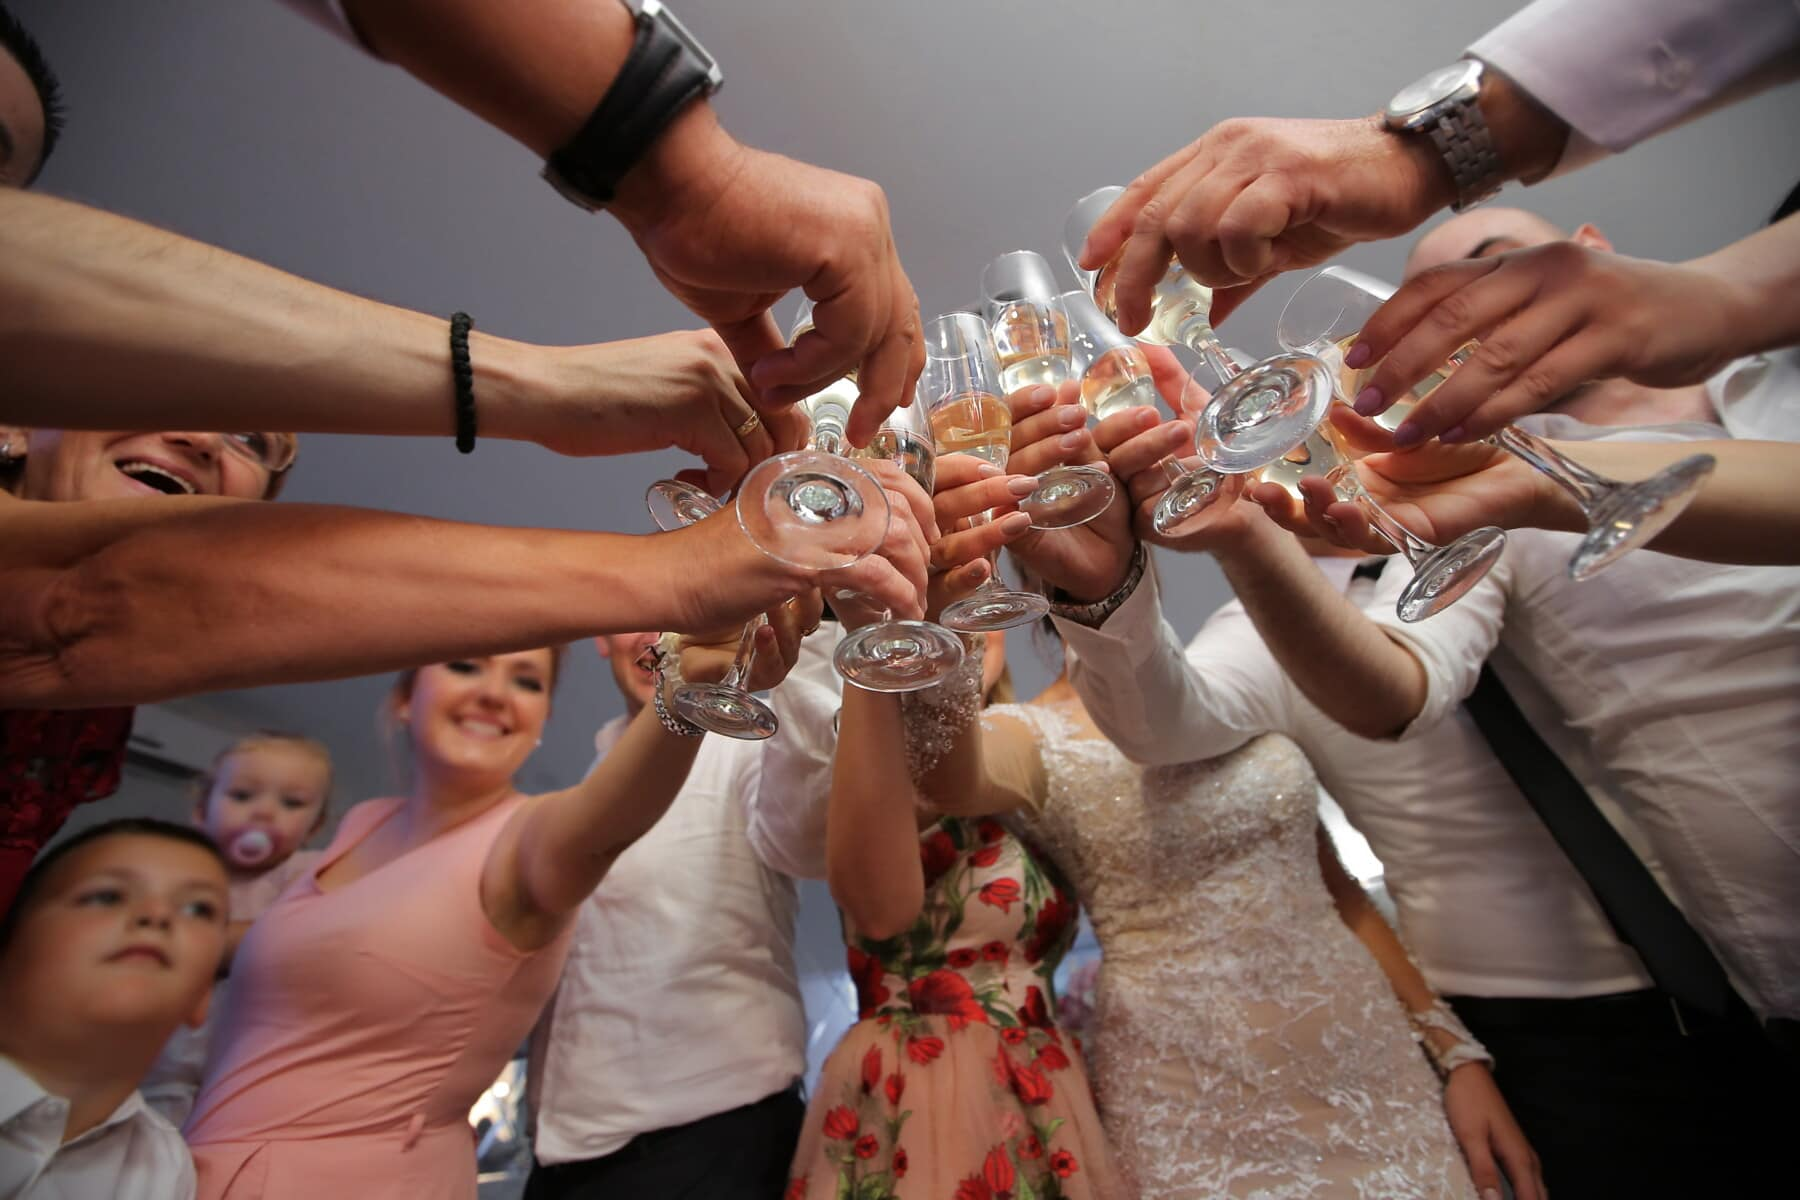 champagne, white wine, hands, glass, crystal, celebration, people, crowd, man, wine